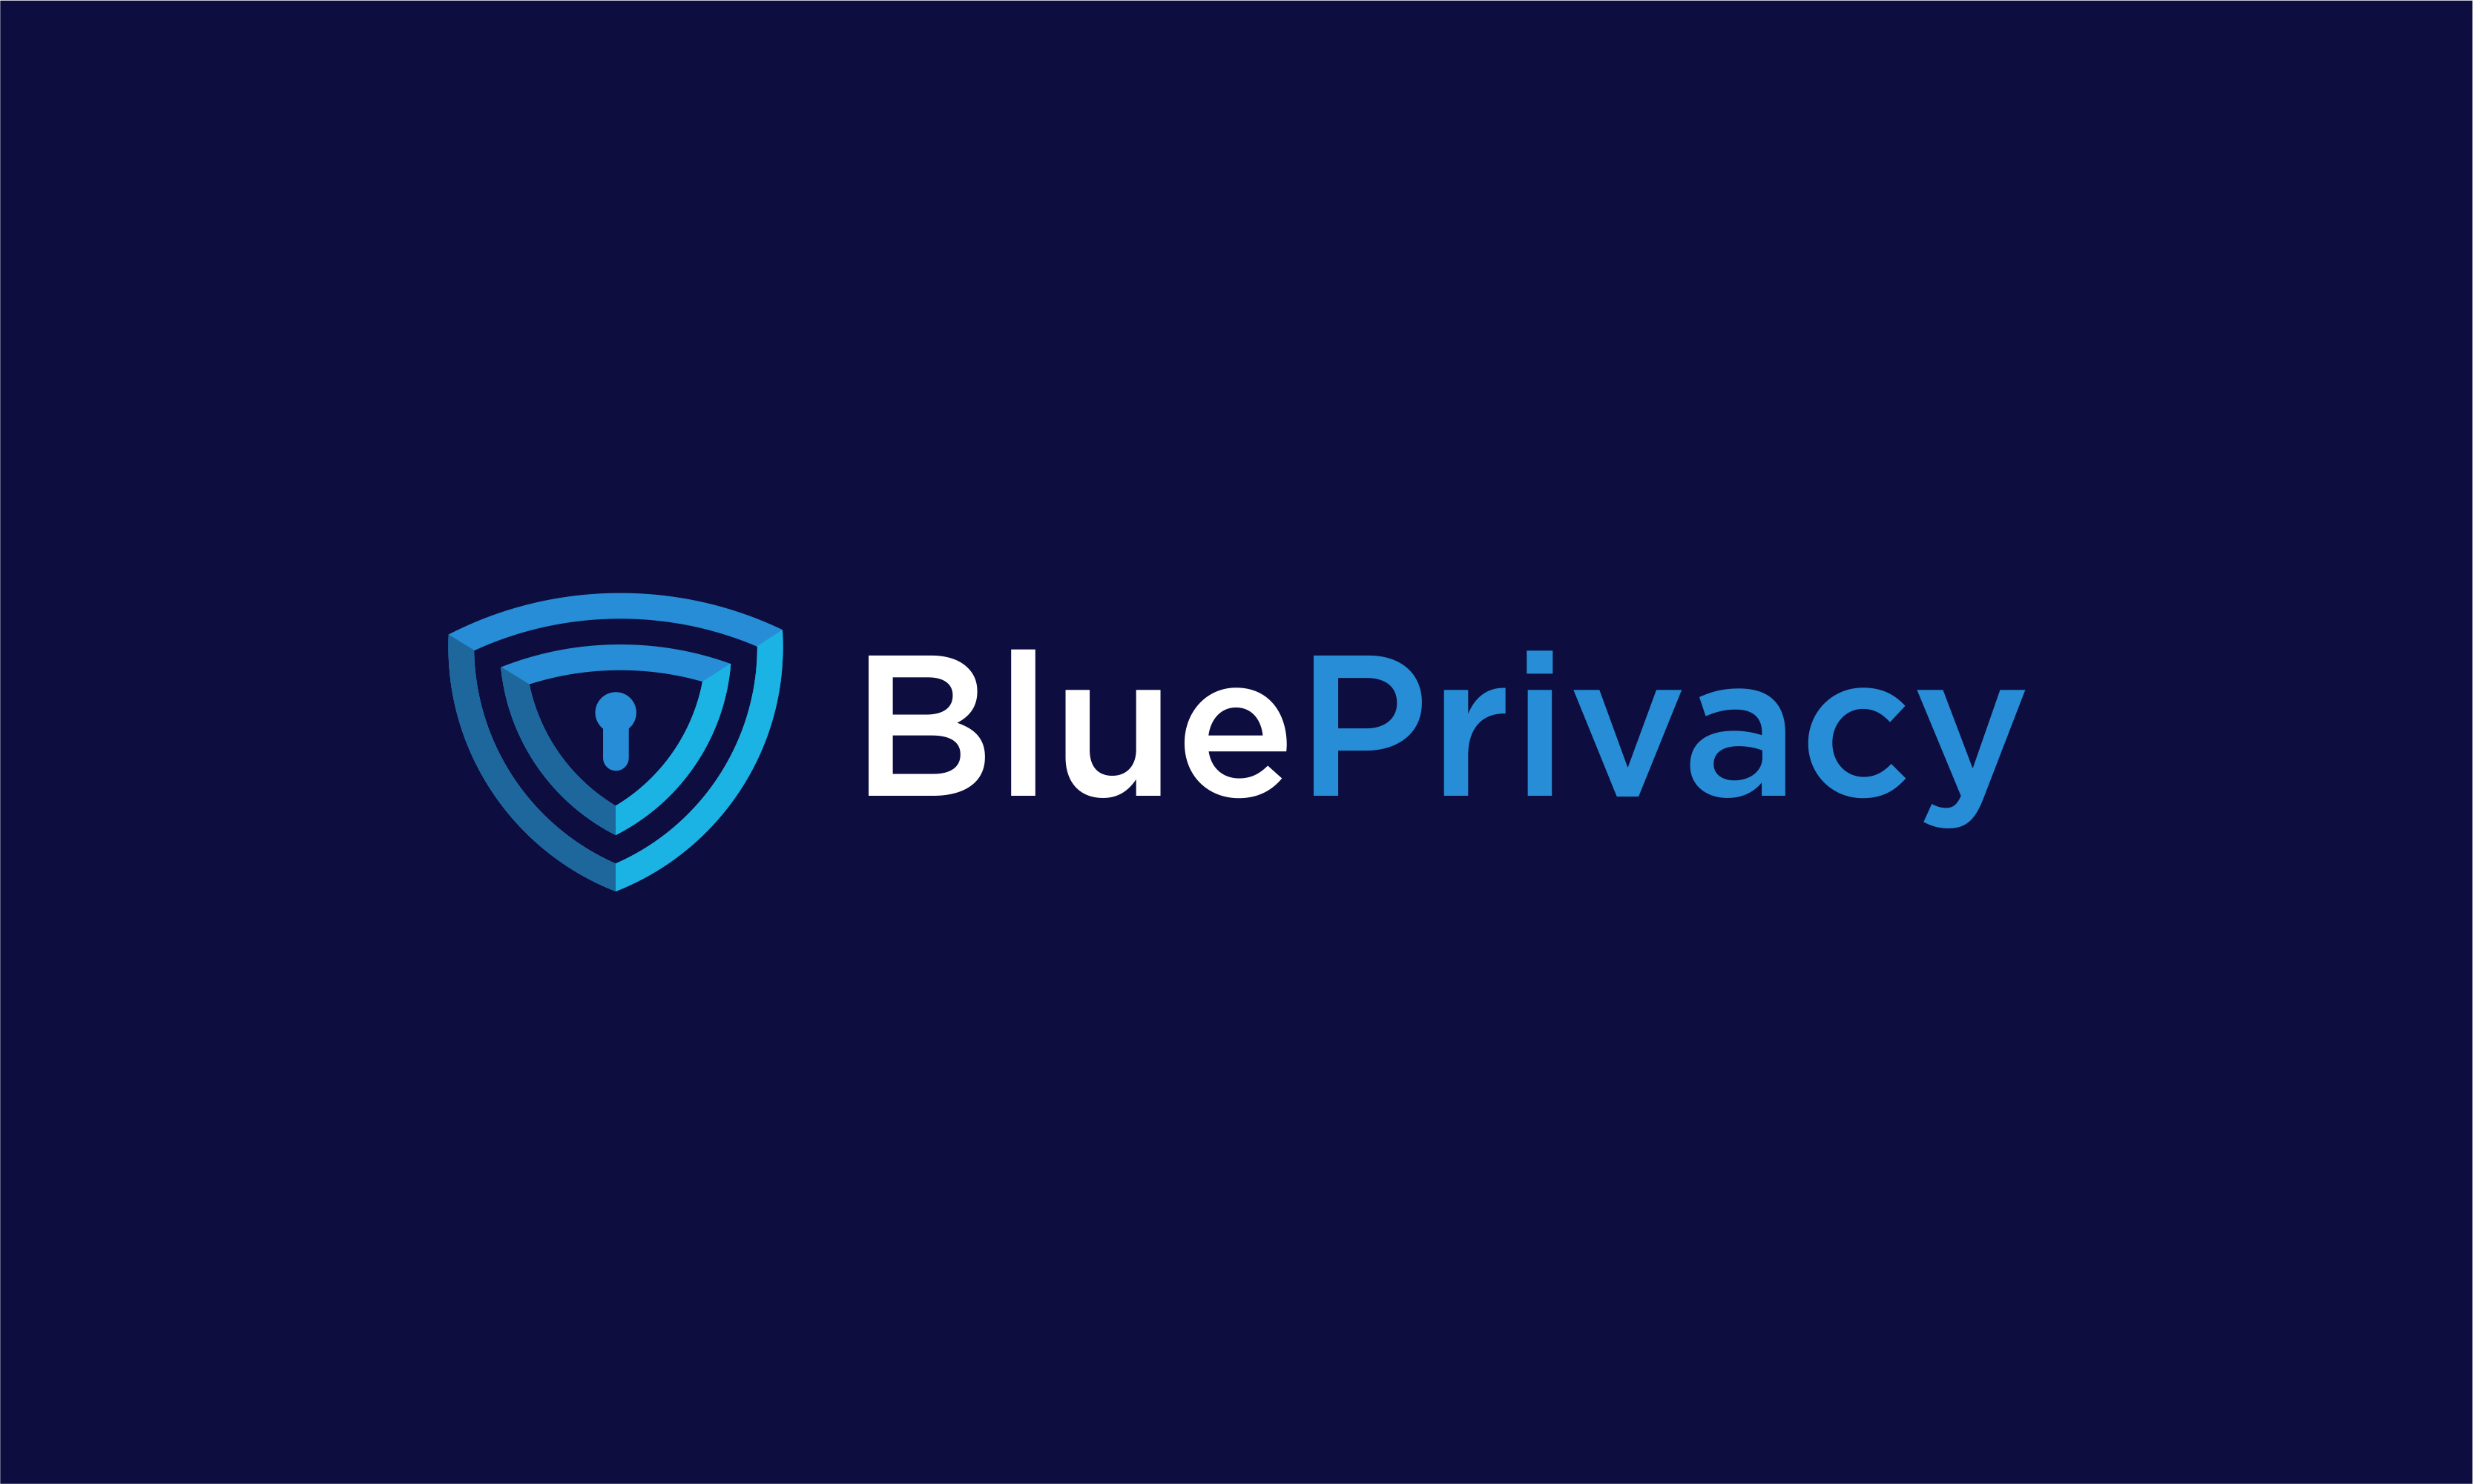 Blueprivacy